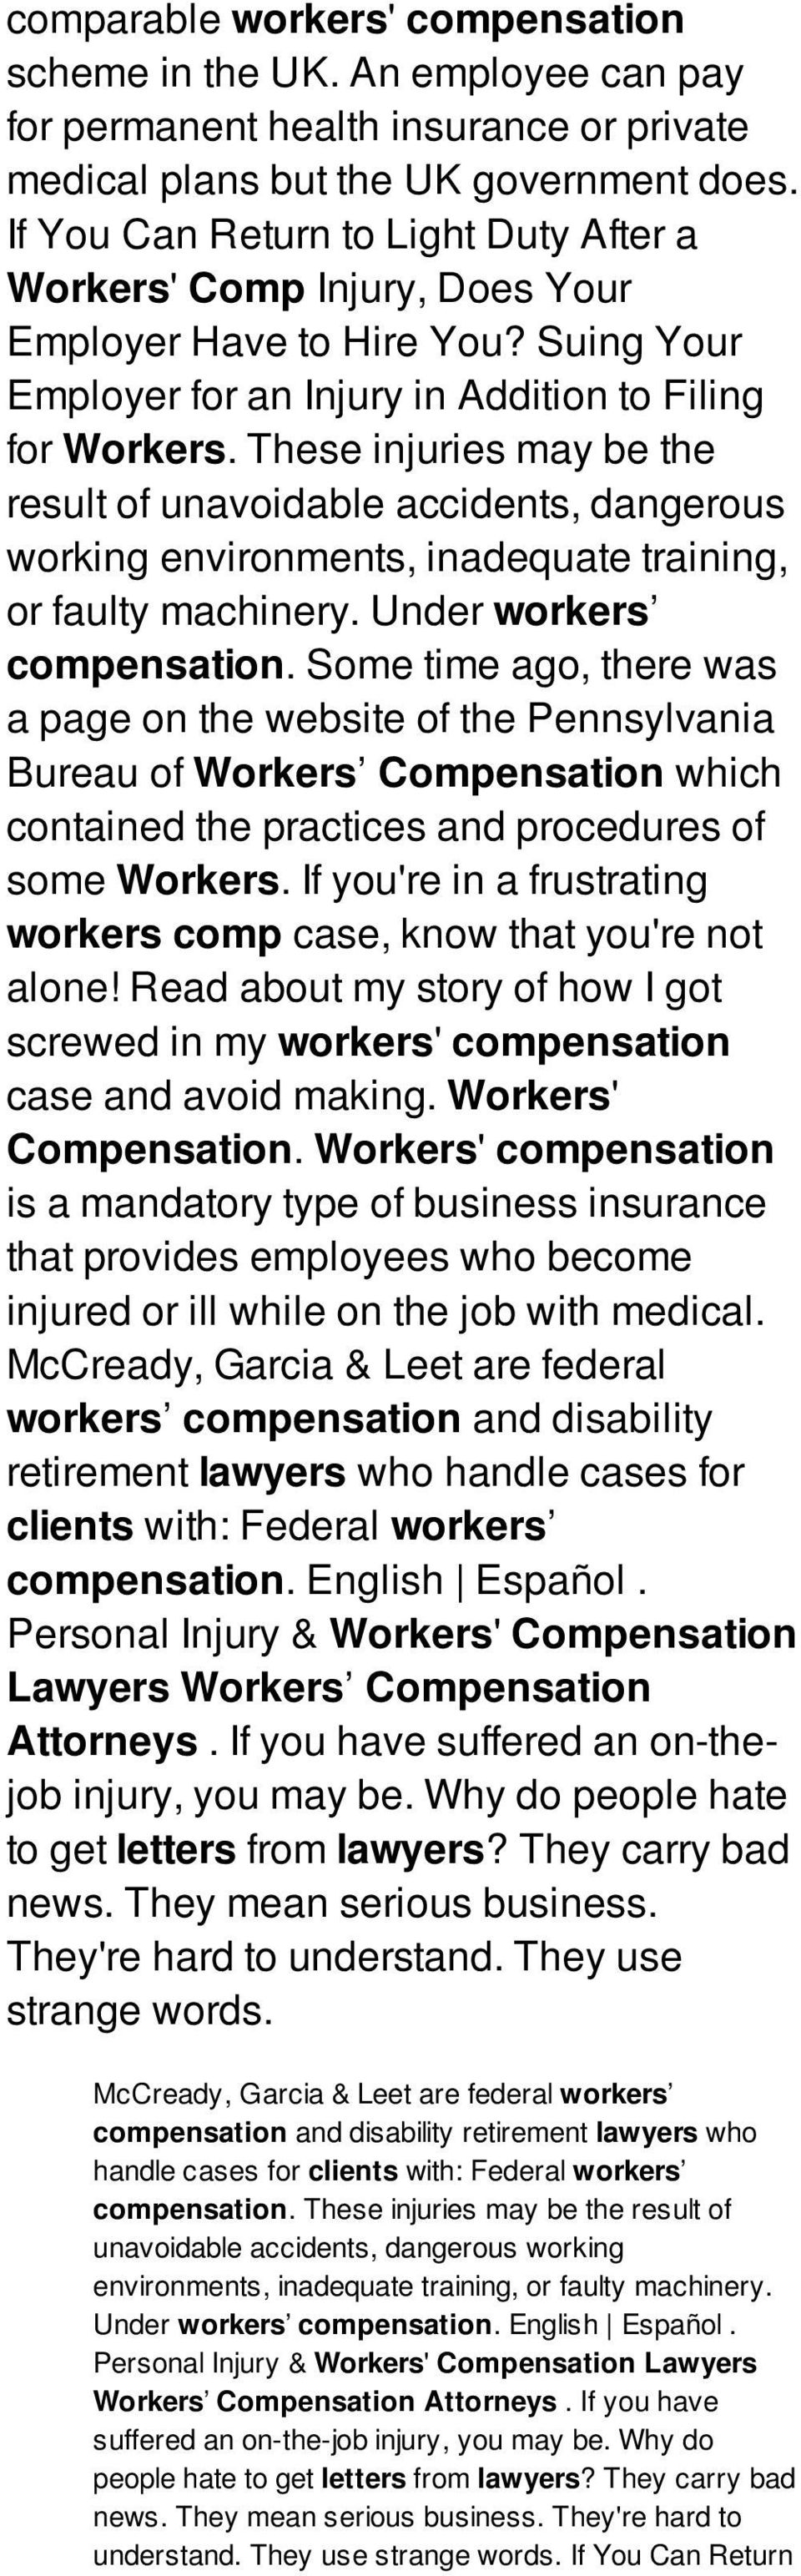 These injuries may be the result of unavoidable accidents, dangerous working environments, inadequate training, or faulty machinery. Under workers compensation.